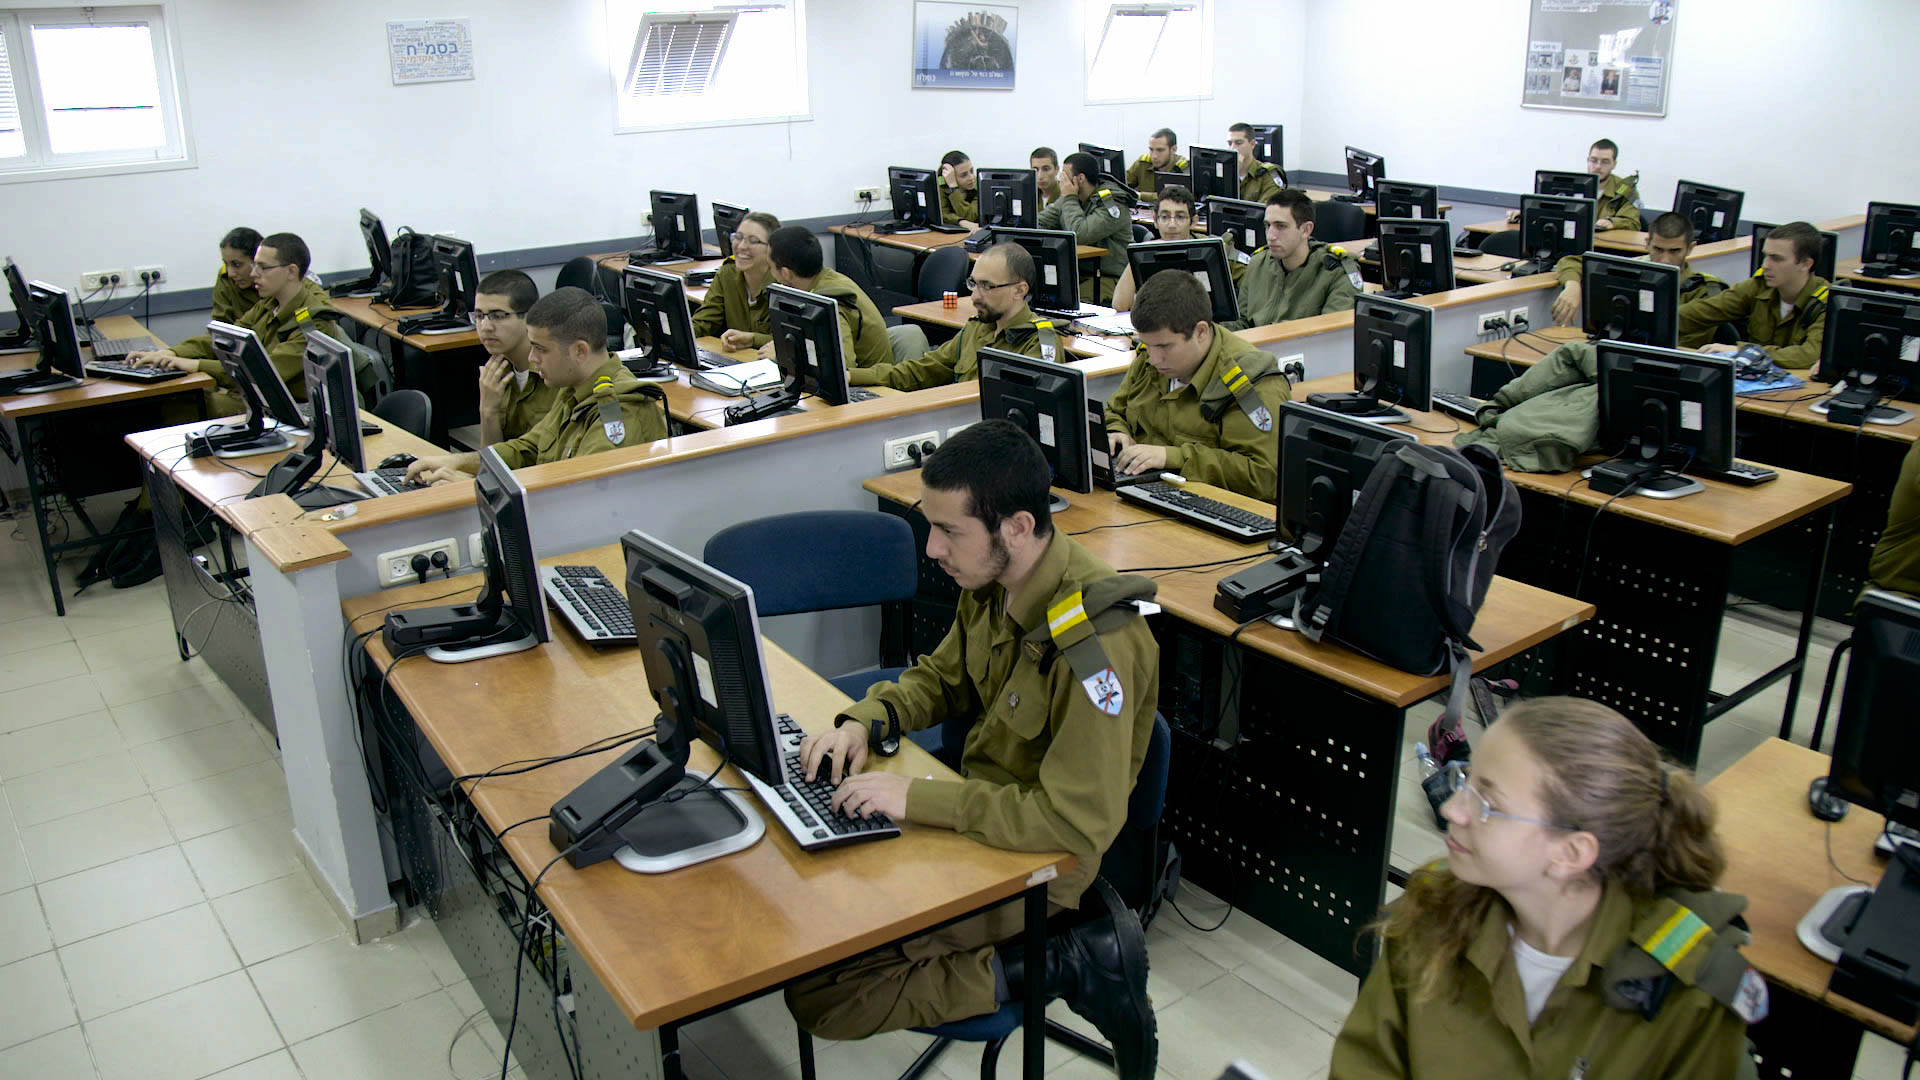 How Israel is becoming the world's top cyber superpower